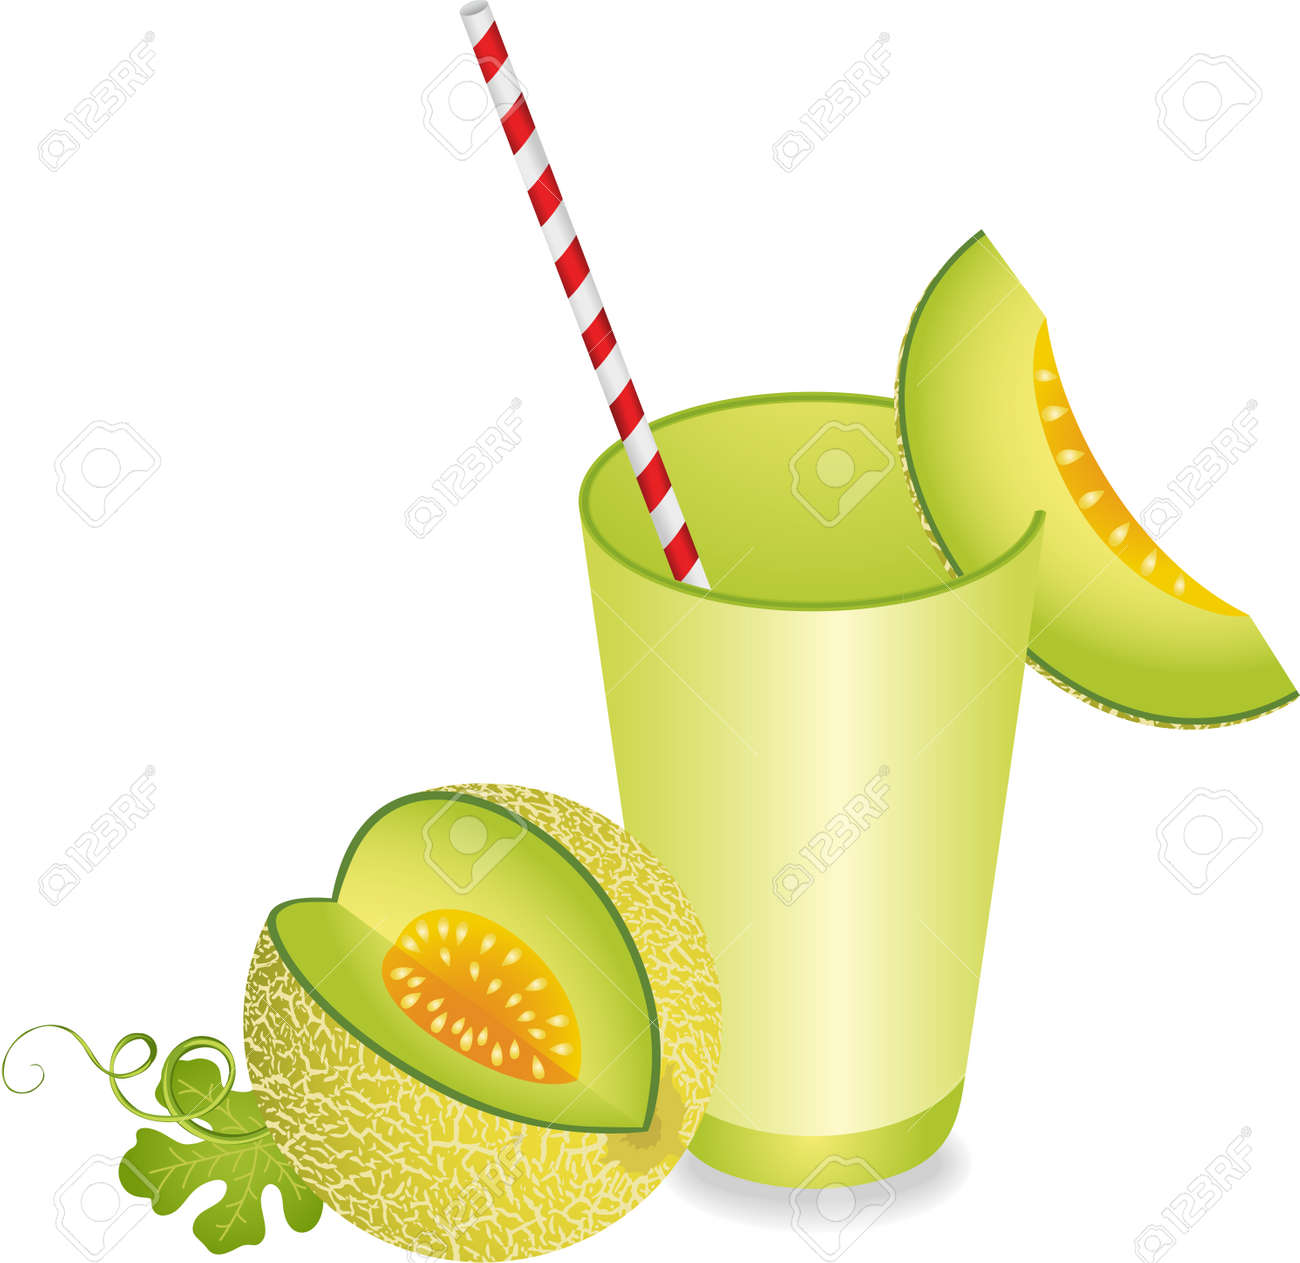 Cantaloupe Melon Juice Summer Refreshment Royalty Free Cliparts Vectors And Stock Illustration Image 48127025 Cantaloupe and mint juice marmita. cantaloupe melon juice summer refreshment